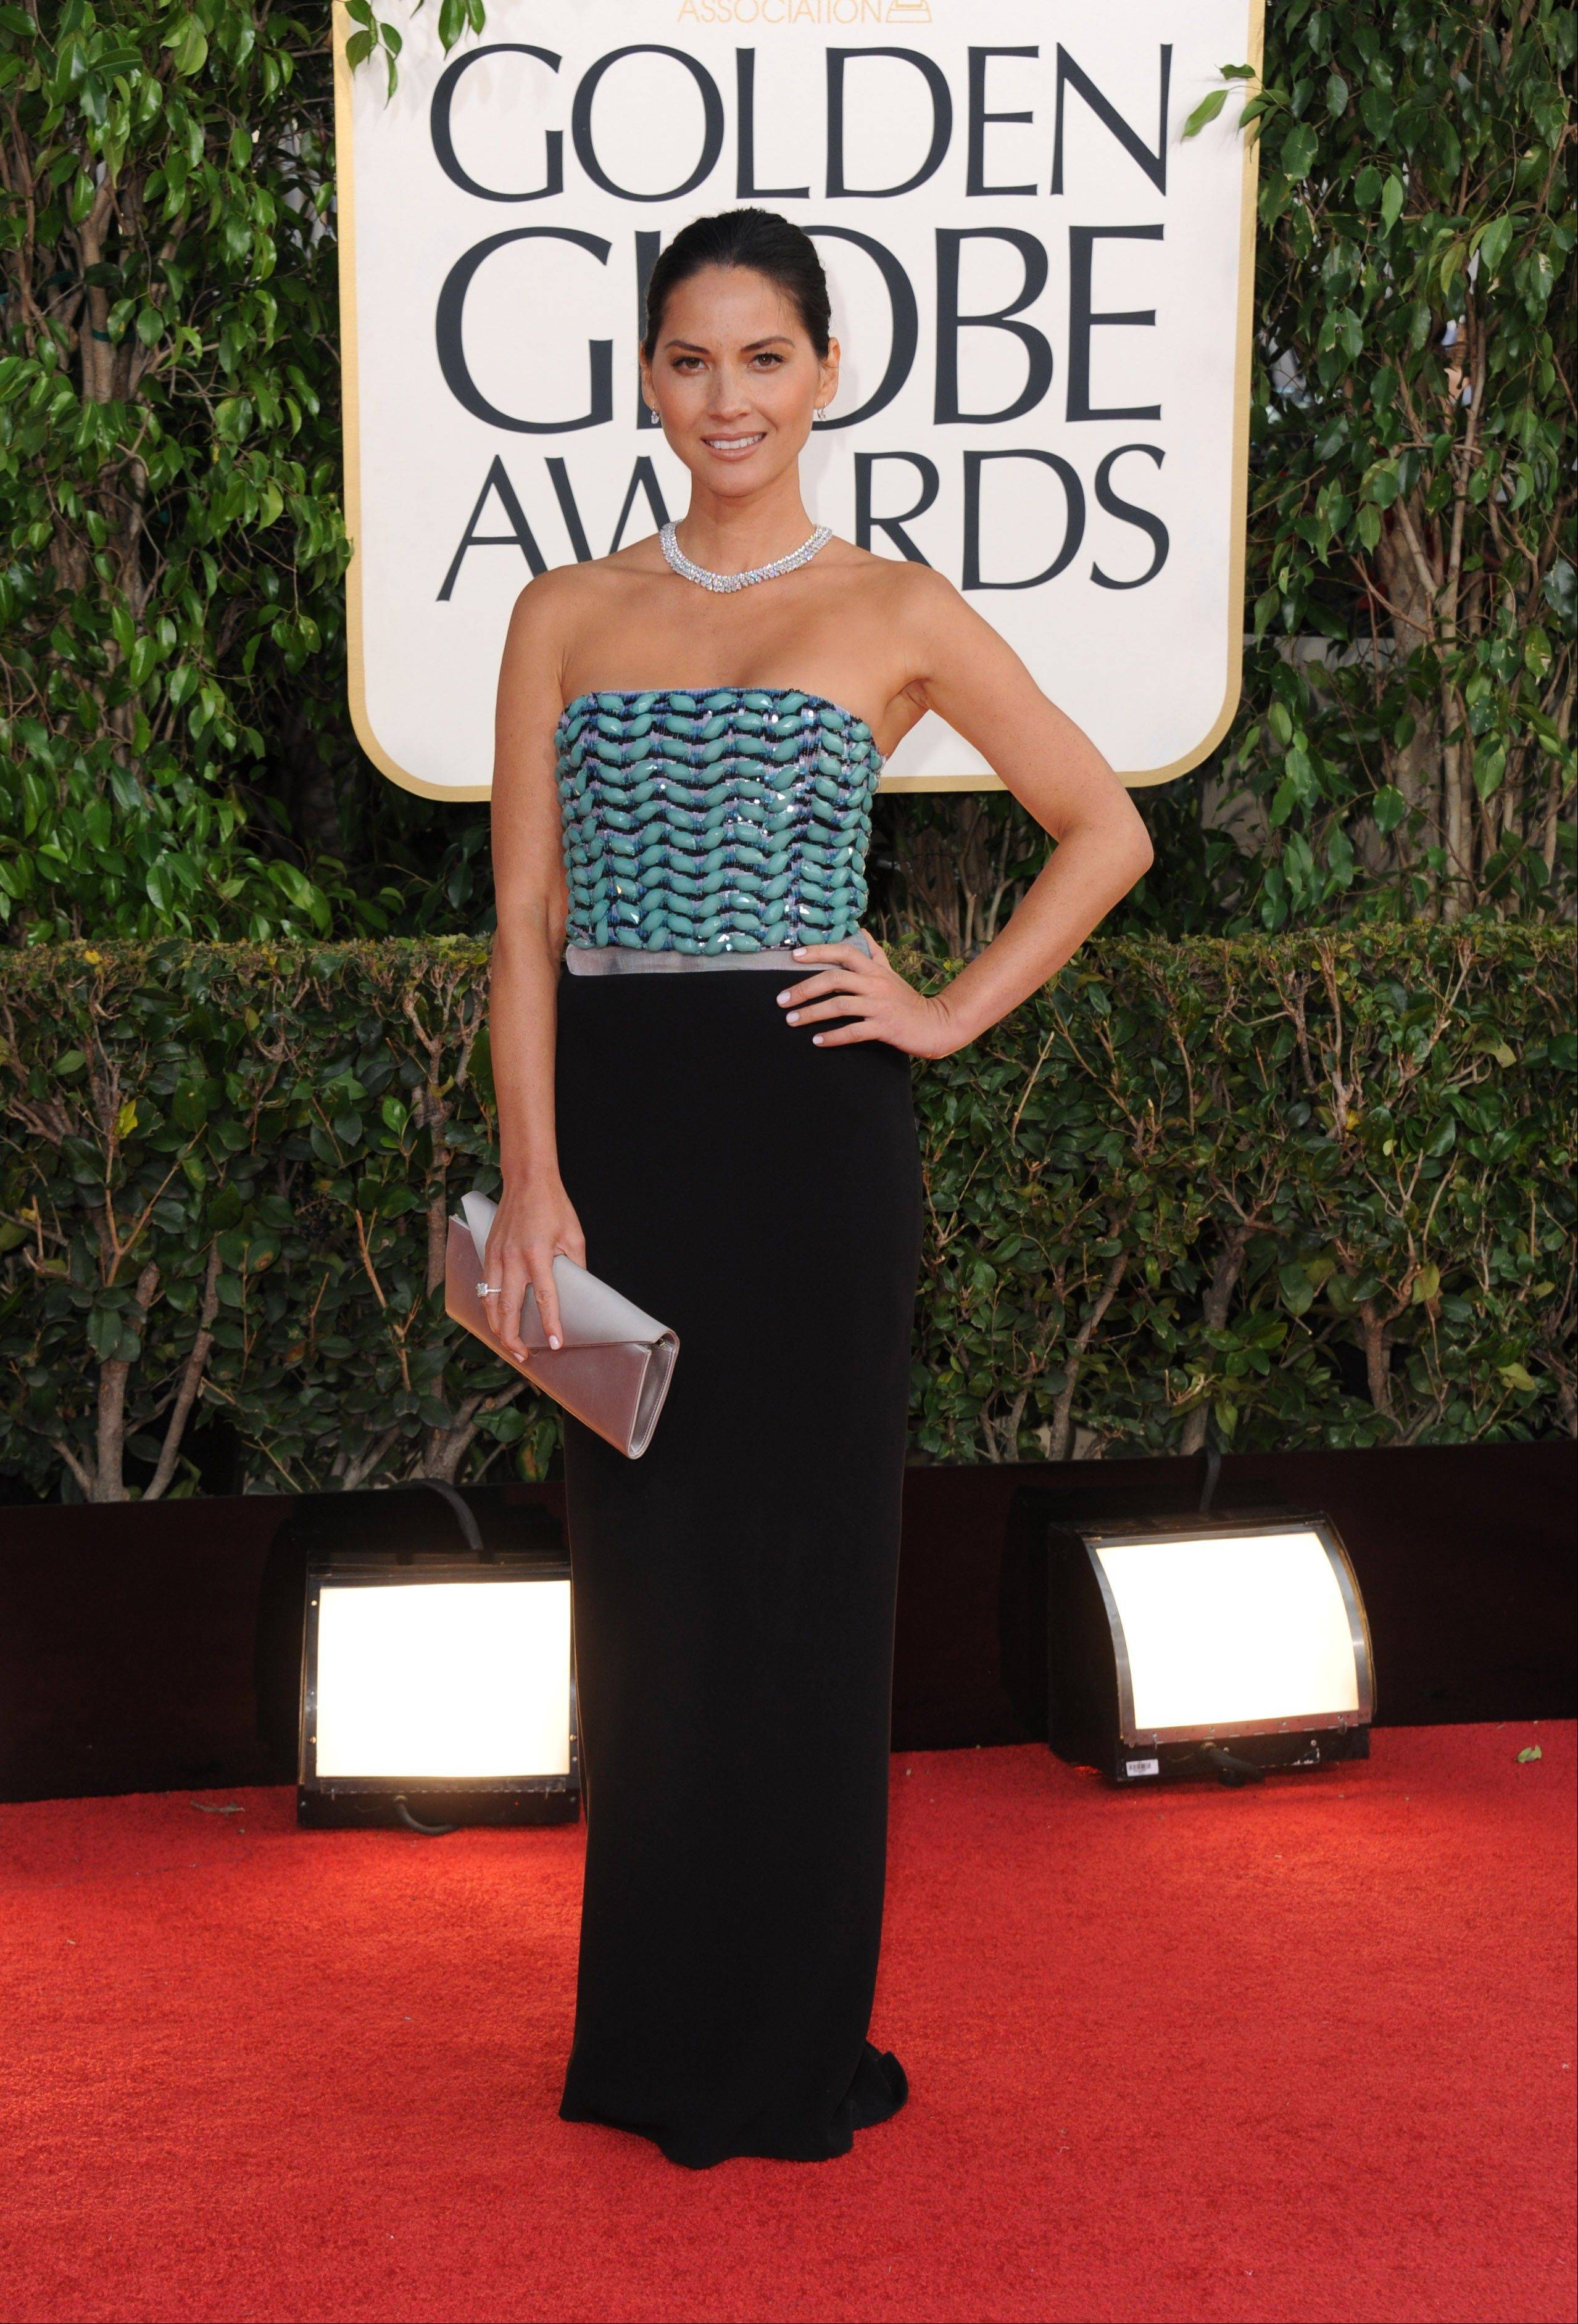 Actress Olivia Munn arrives at the 70th Annual Golden Globe Awards at the Beverly Hilton Hotel on Sunday Jan. 13, 2013, in Beverly Hills, Calif.